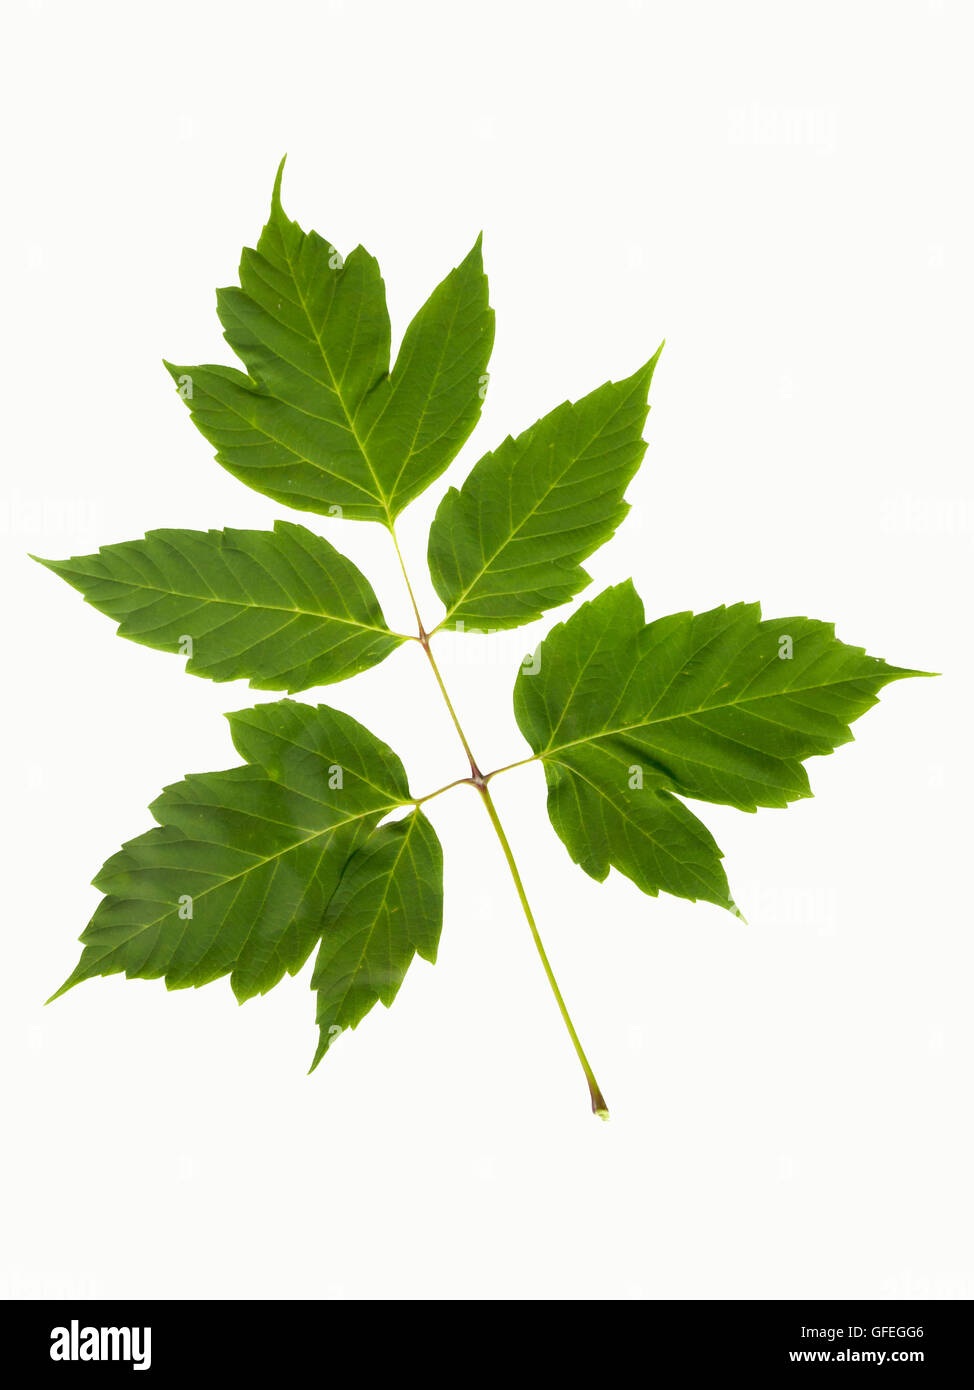 Box elder maple leaves cut out on white background. - Stock Image